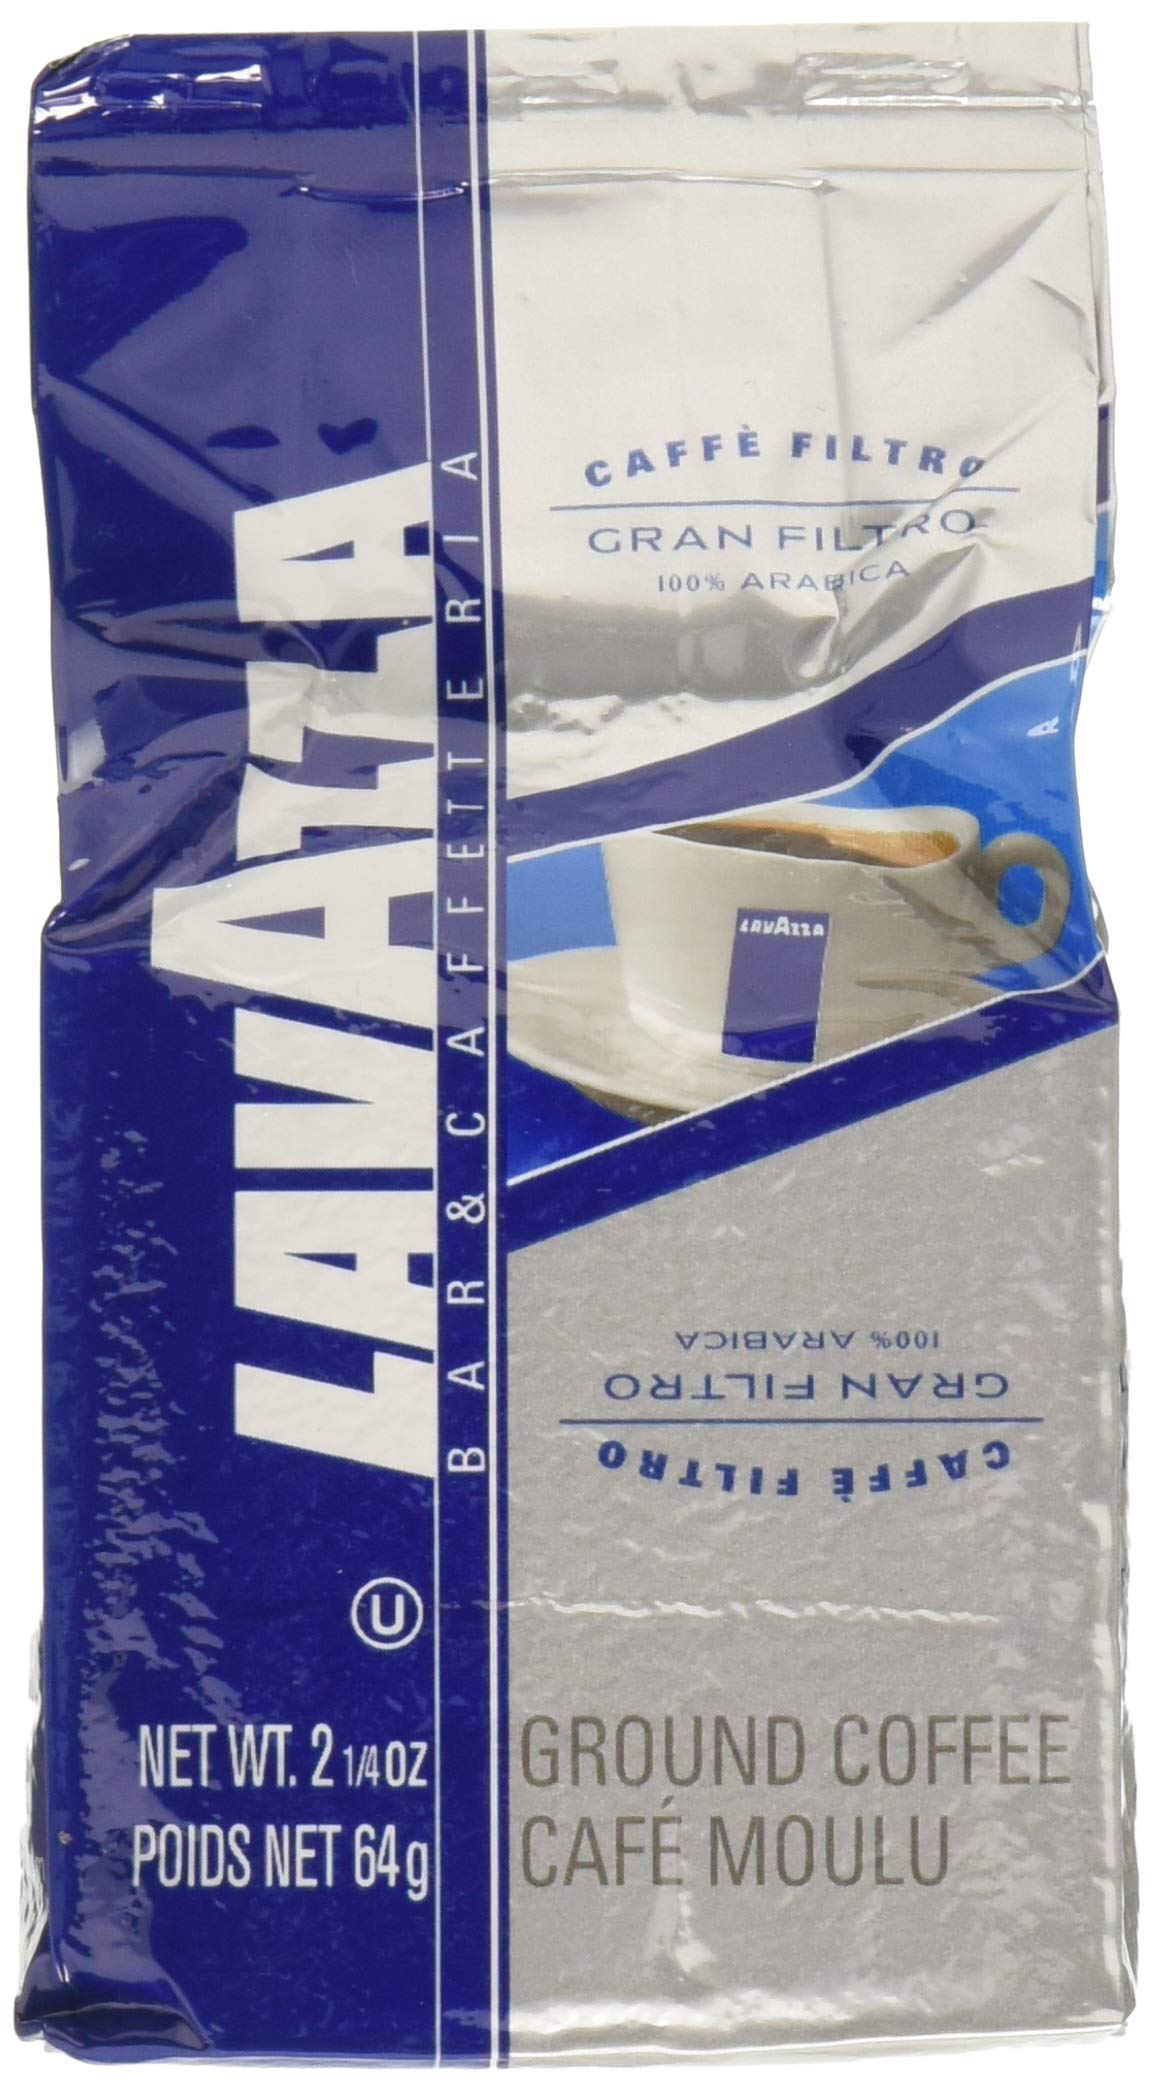 Lavazza Gran Filtro Ground Coffee Blend, Medium Roast, 2.25-Ounce Bags (Pack of 30) by Lavazza